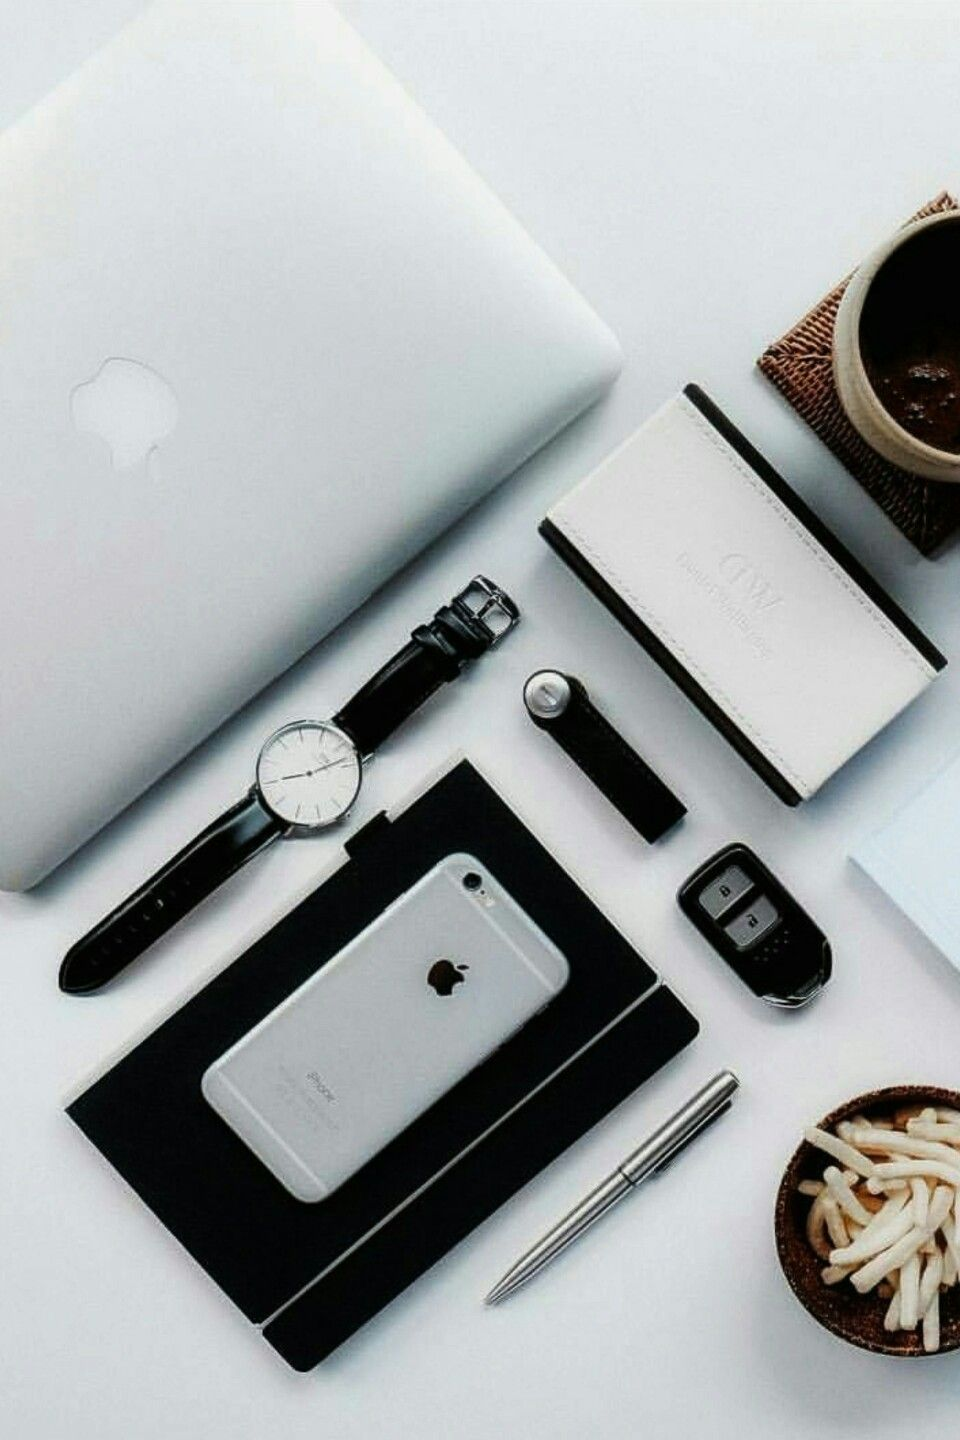 Pin by Artanique on tech Accessories store, Accessories